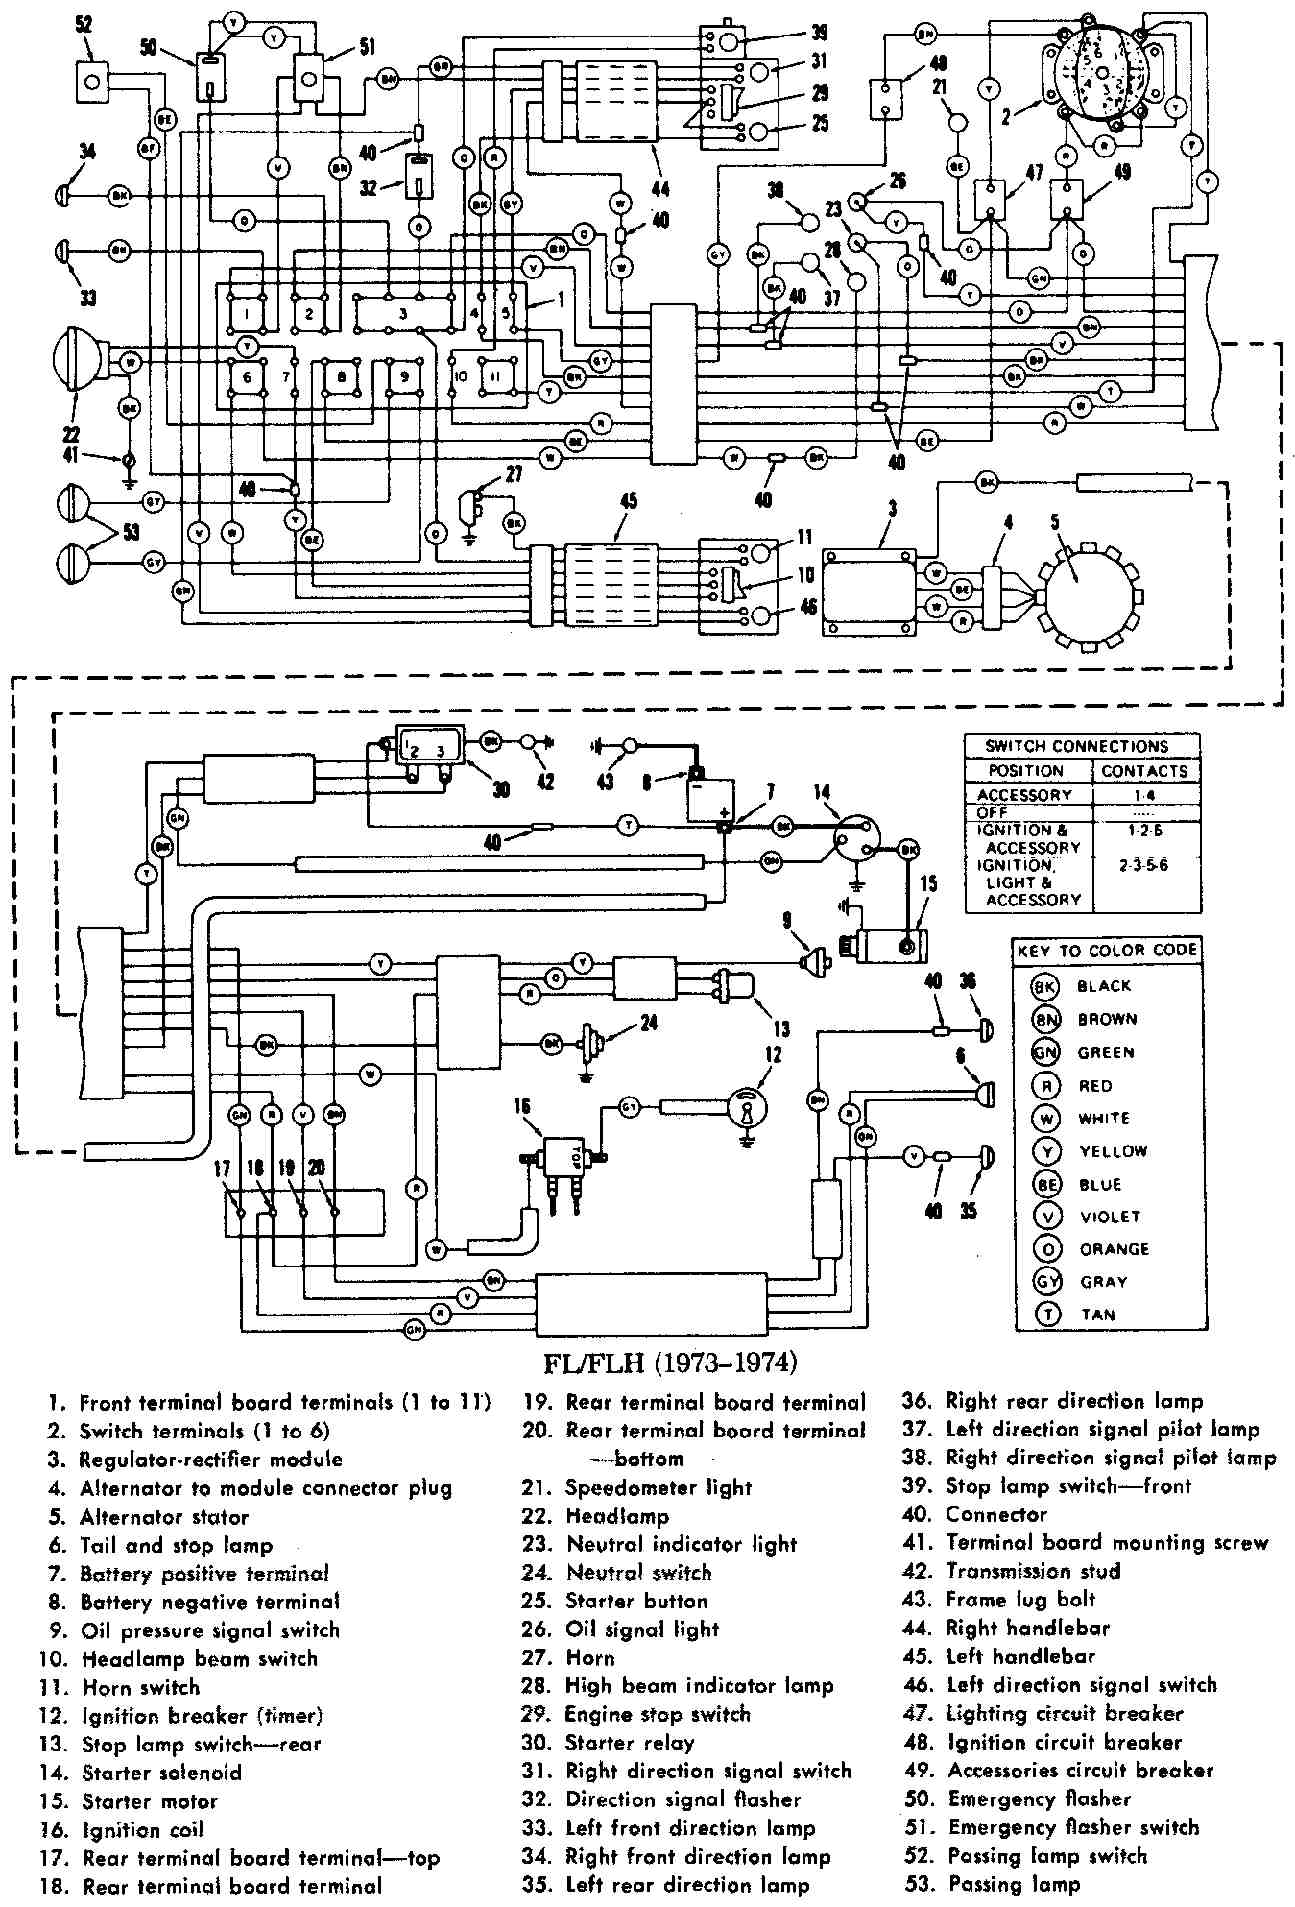 1974 Bmw 2002 Engine Diagram Harley Wiring Wires Detailed Schematics Starter Relay House Simple Wire 1976 Davidson